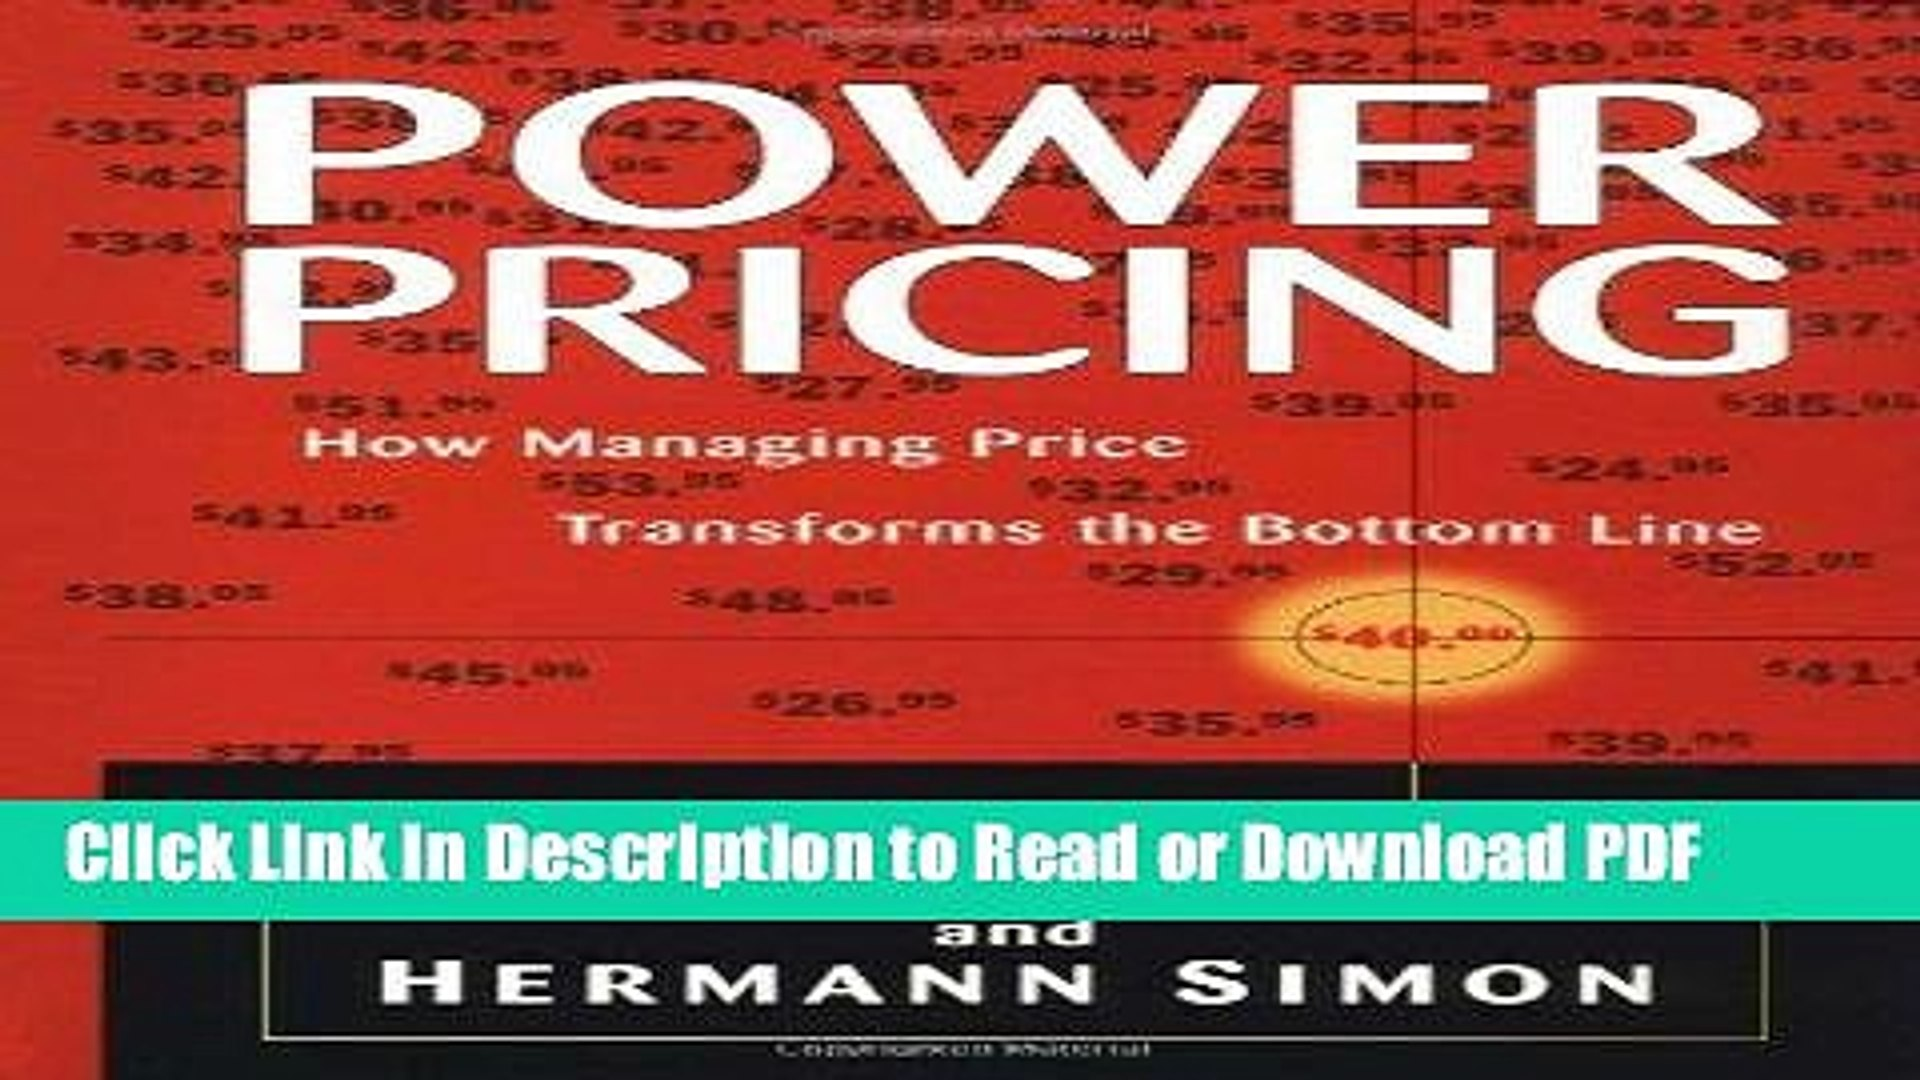 Download Power Pricing: How Managing Price Transforms the Bottom Line Ebook Online